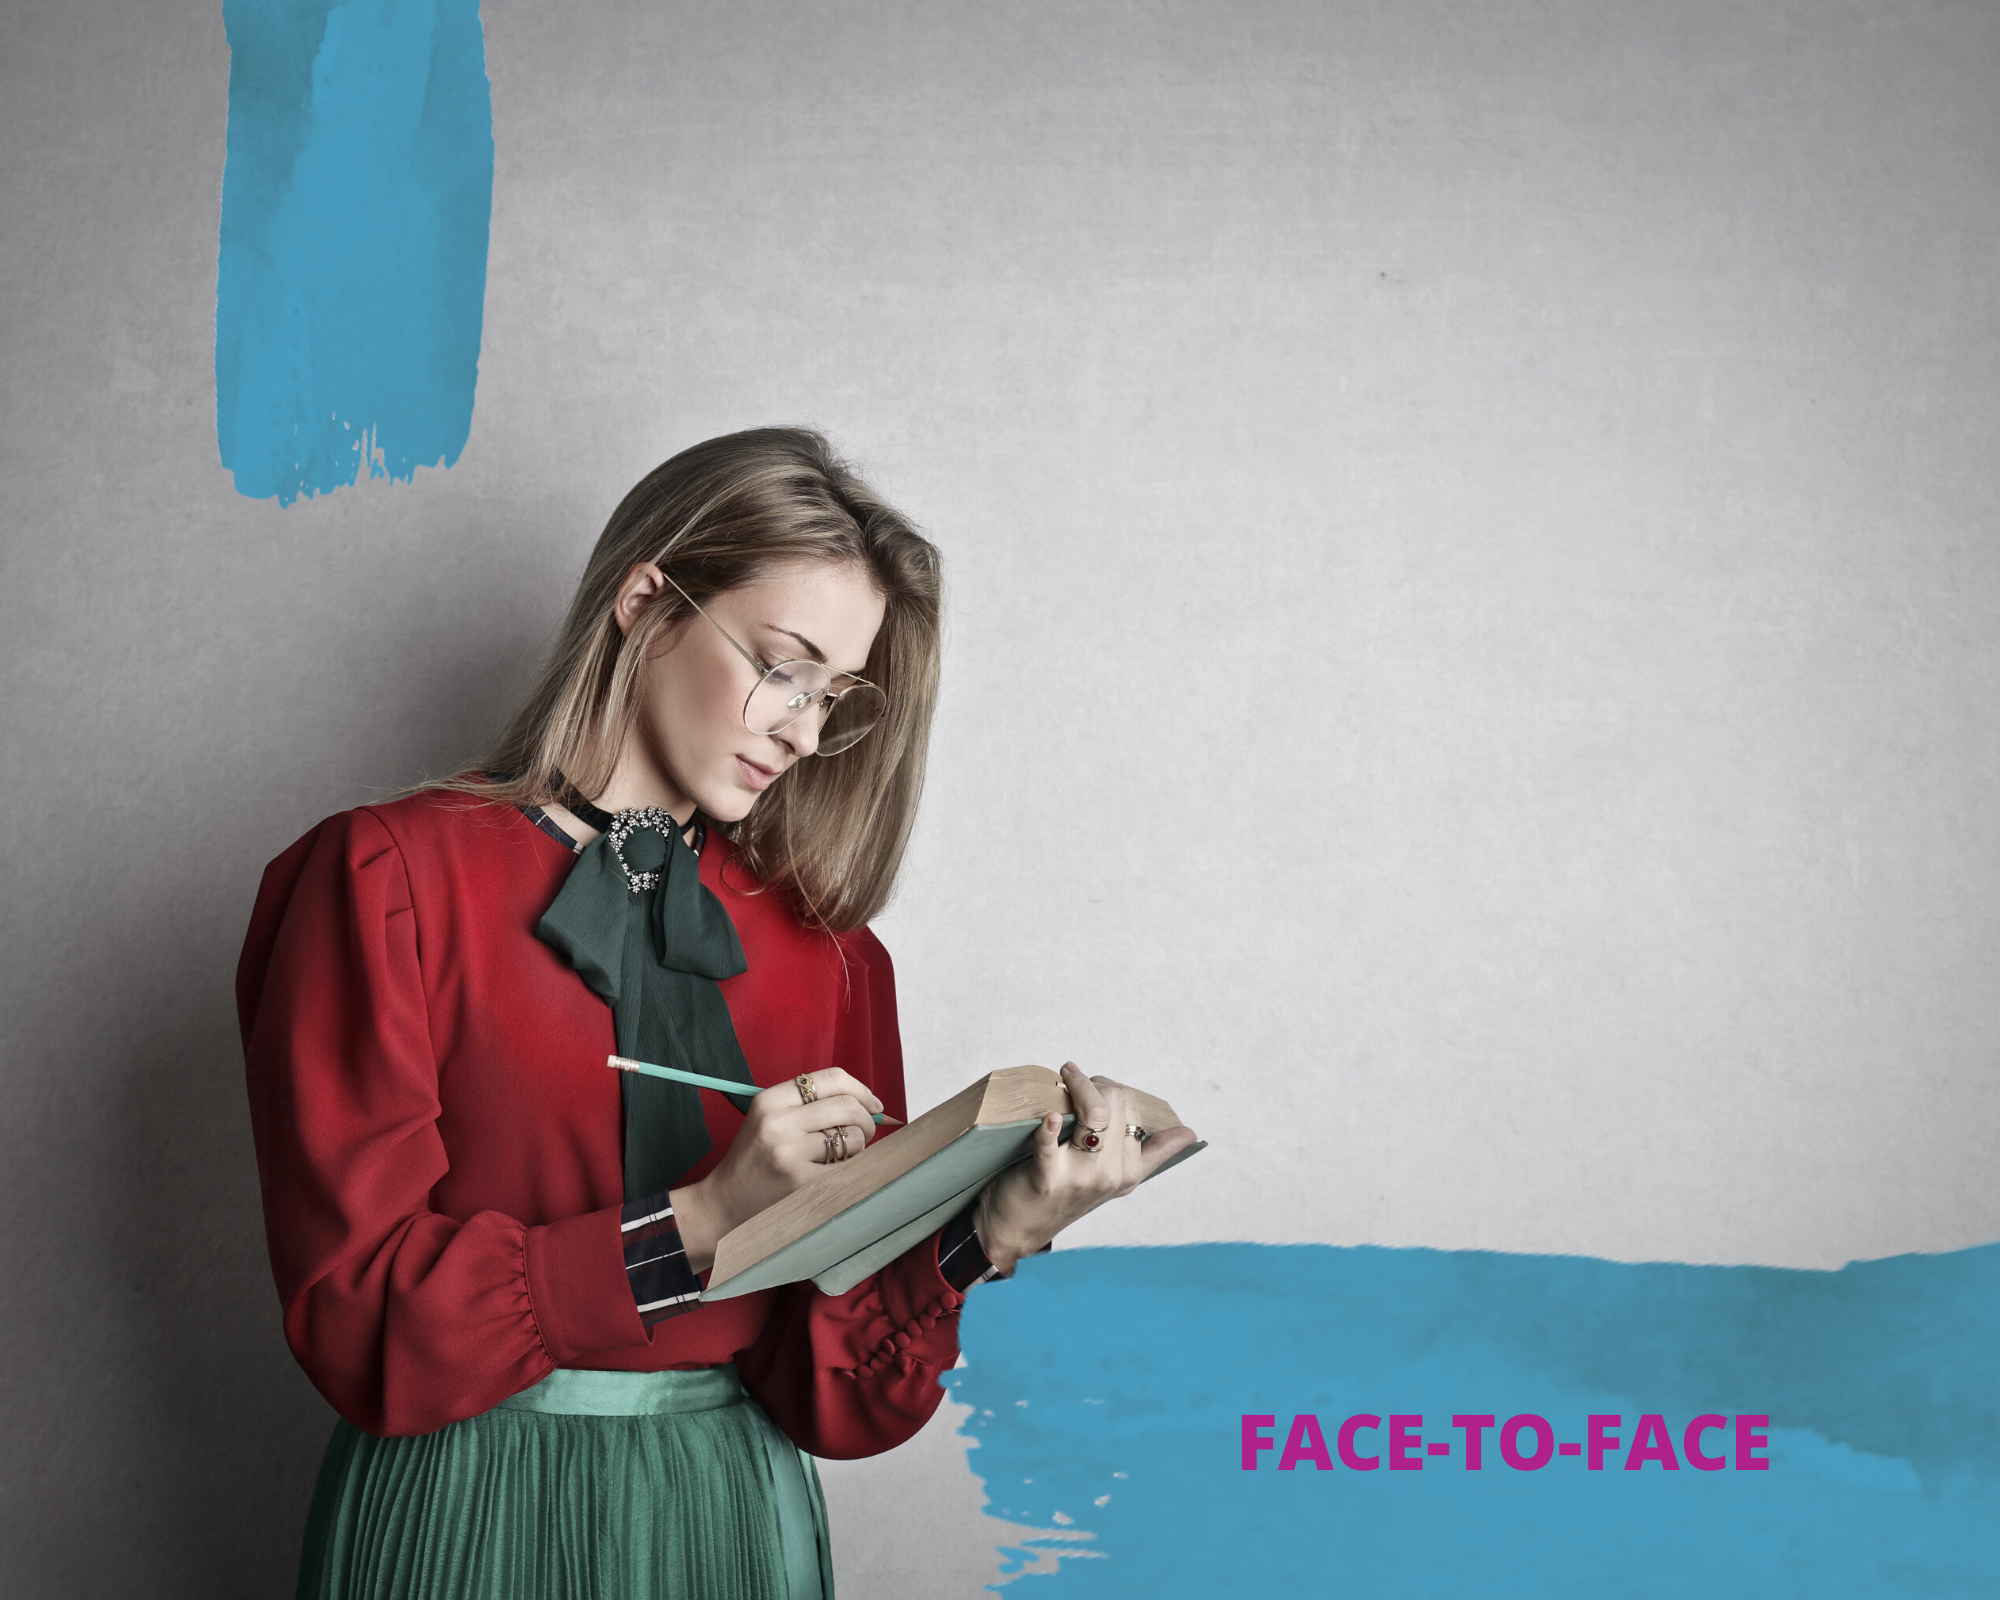 Higher Intermediate English (face-to-face)